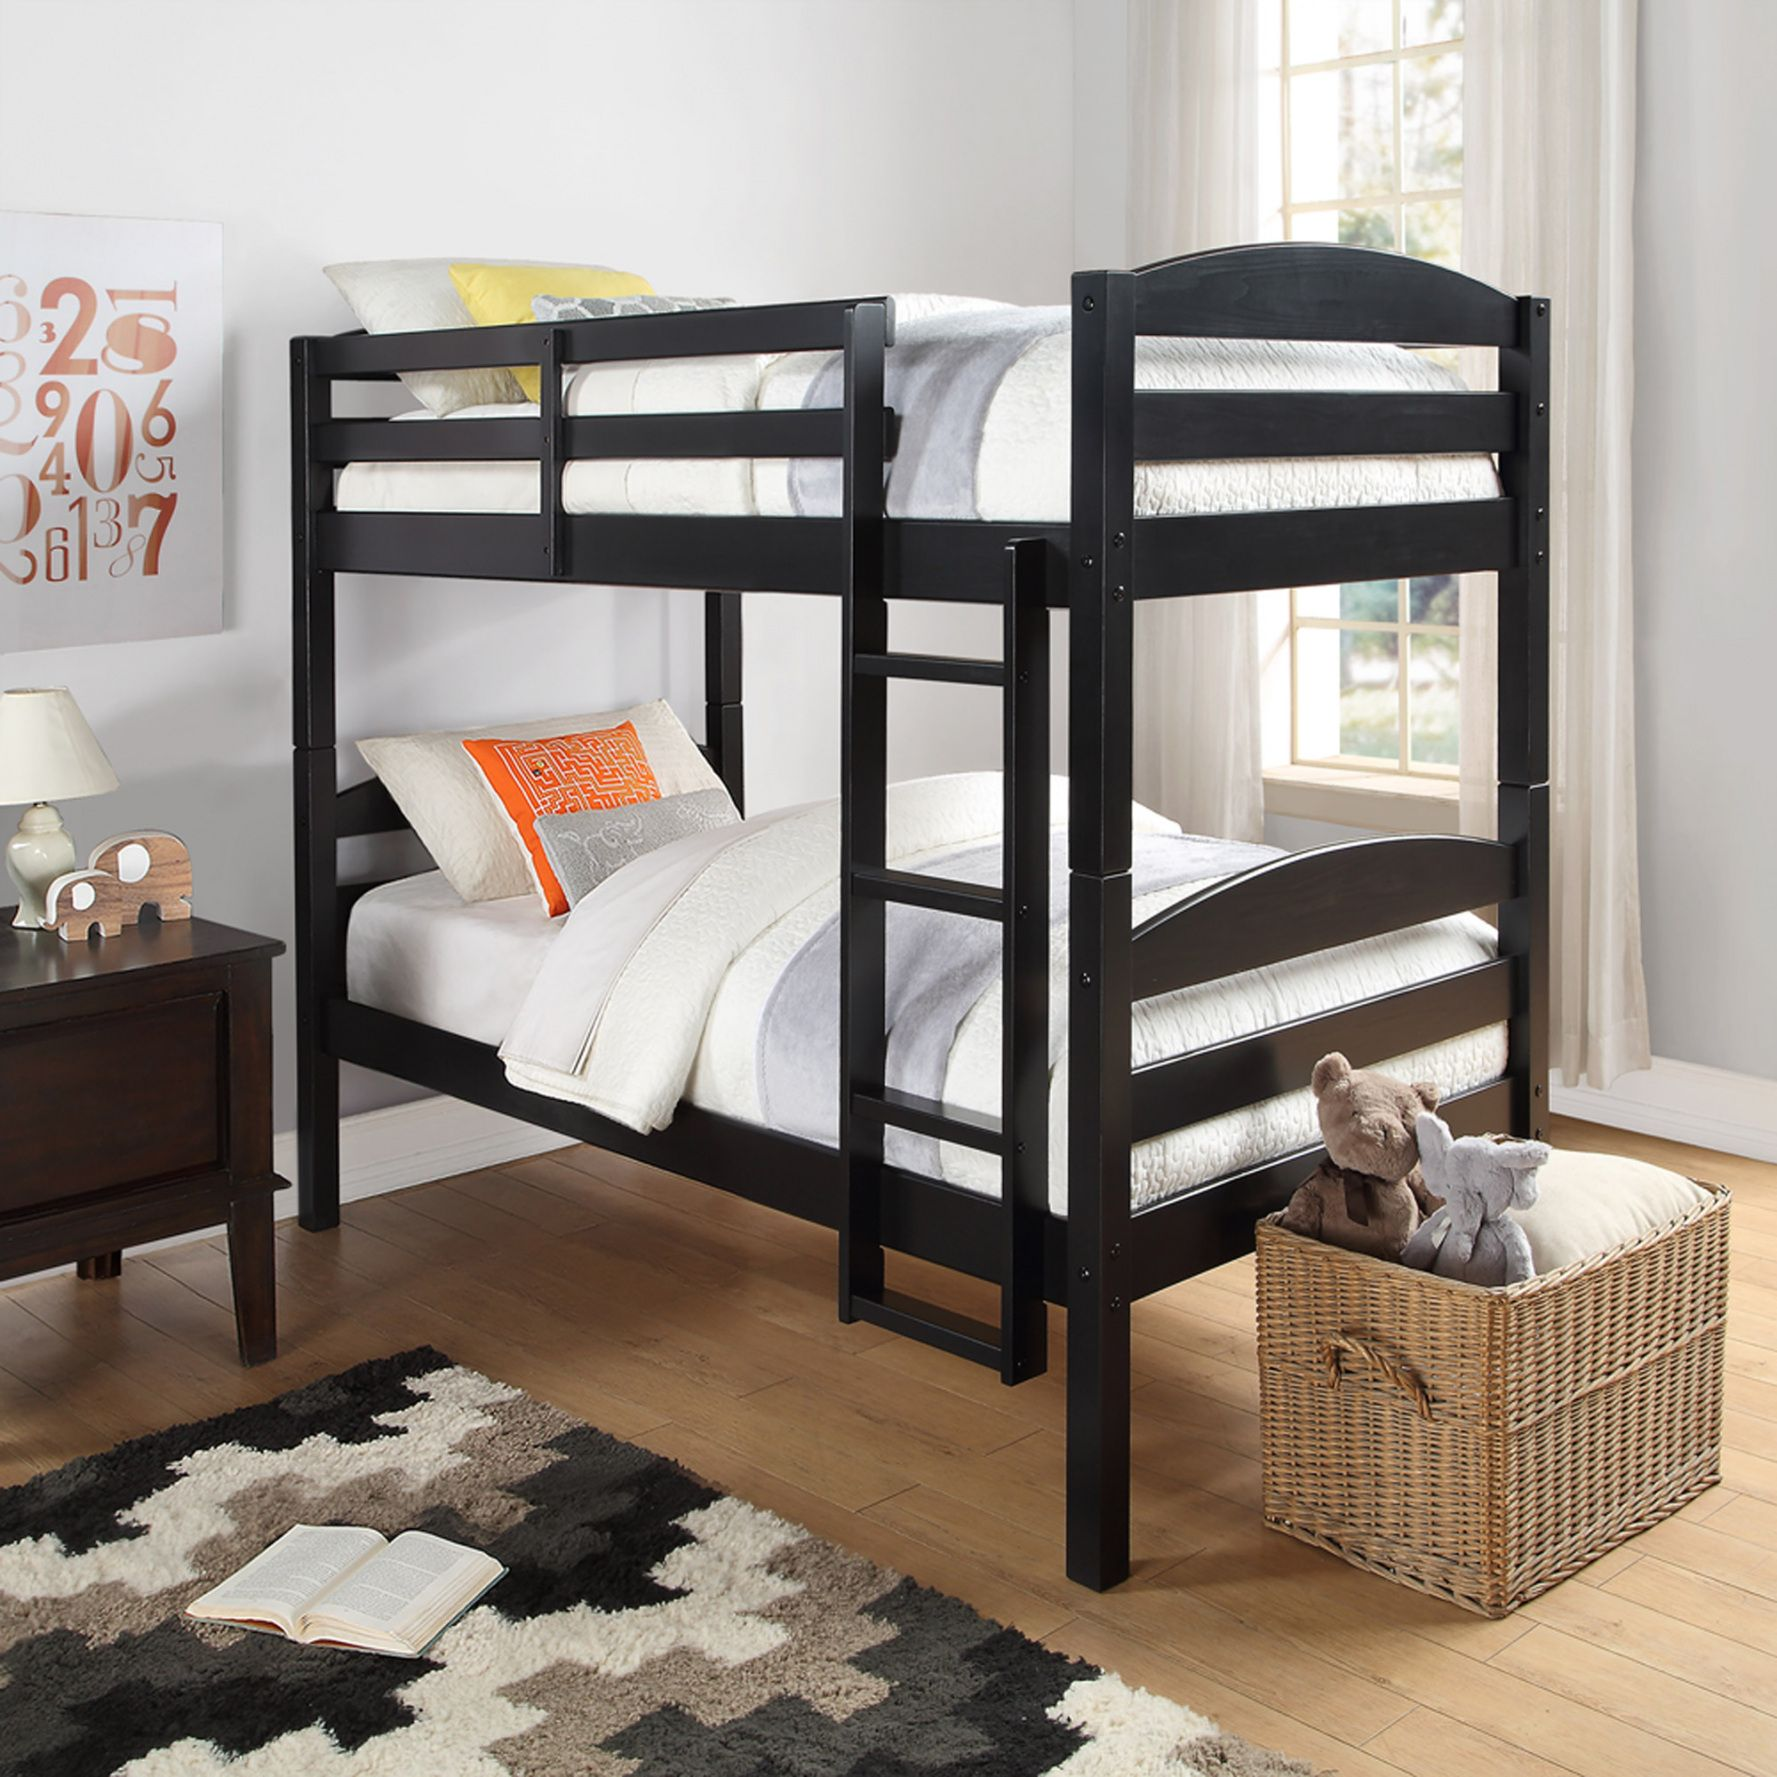 50 Bunk Beds For Twins Interior Design Ideas For Bedroom Check